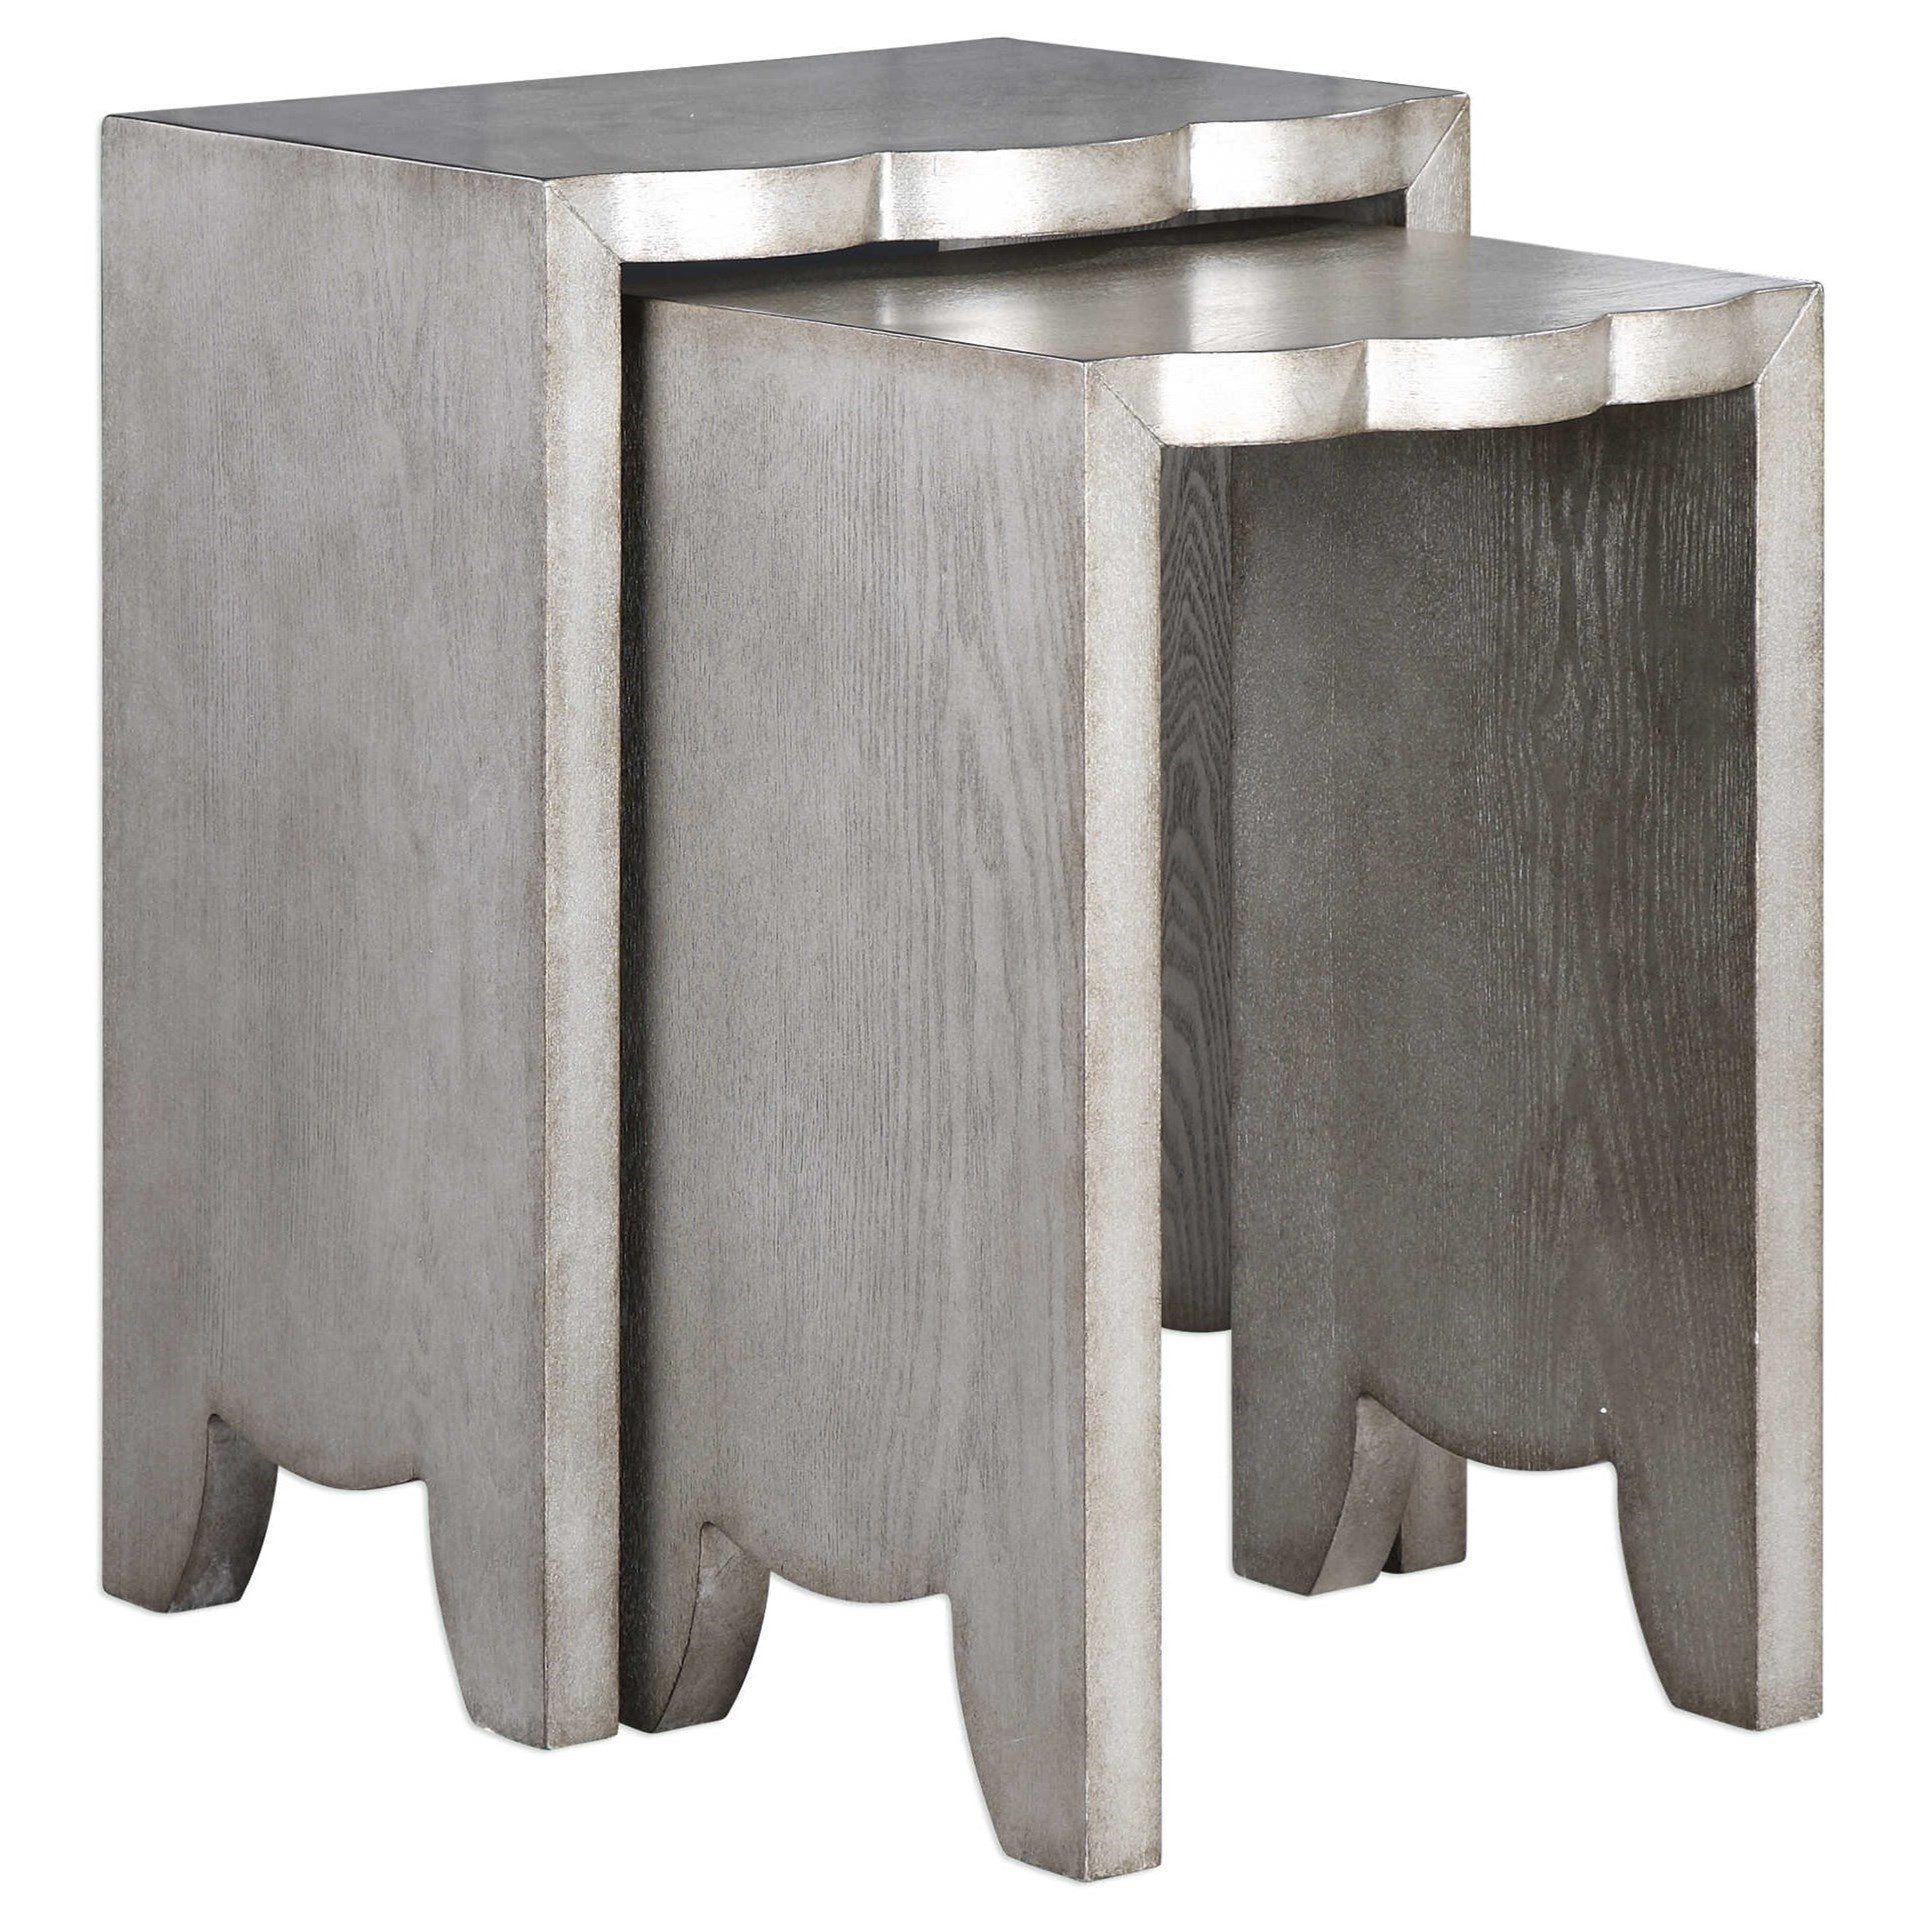 Imala Natural Ash Nesting Tables (Set of 2)